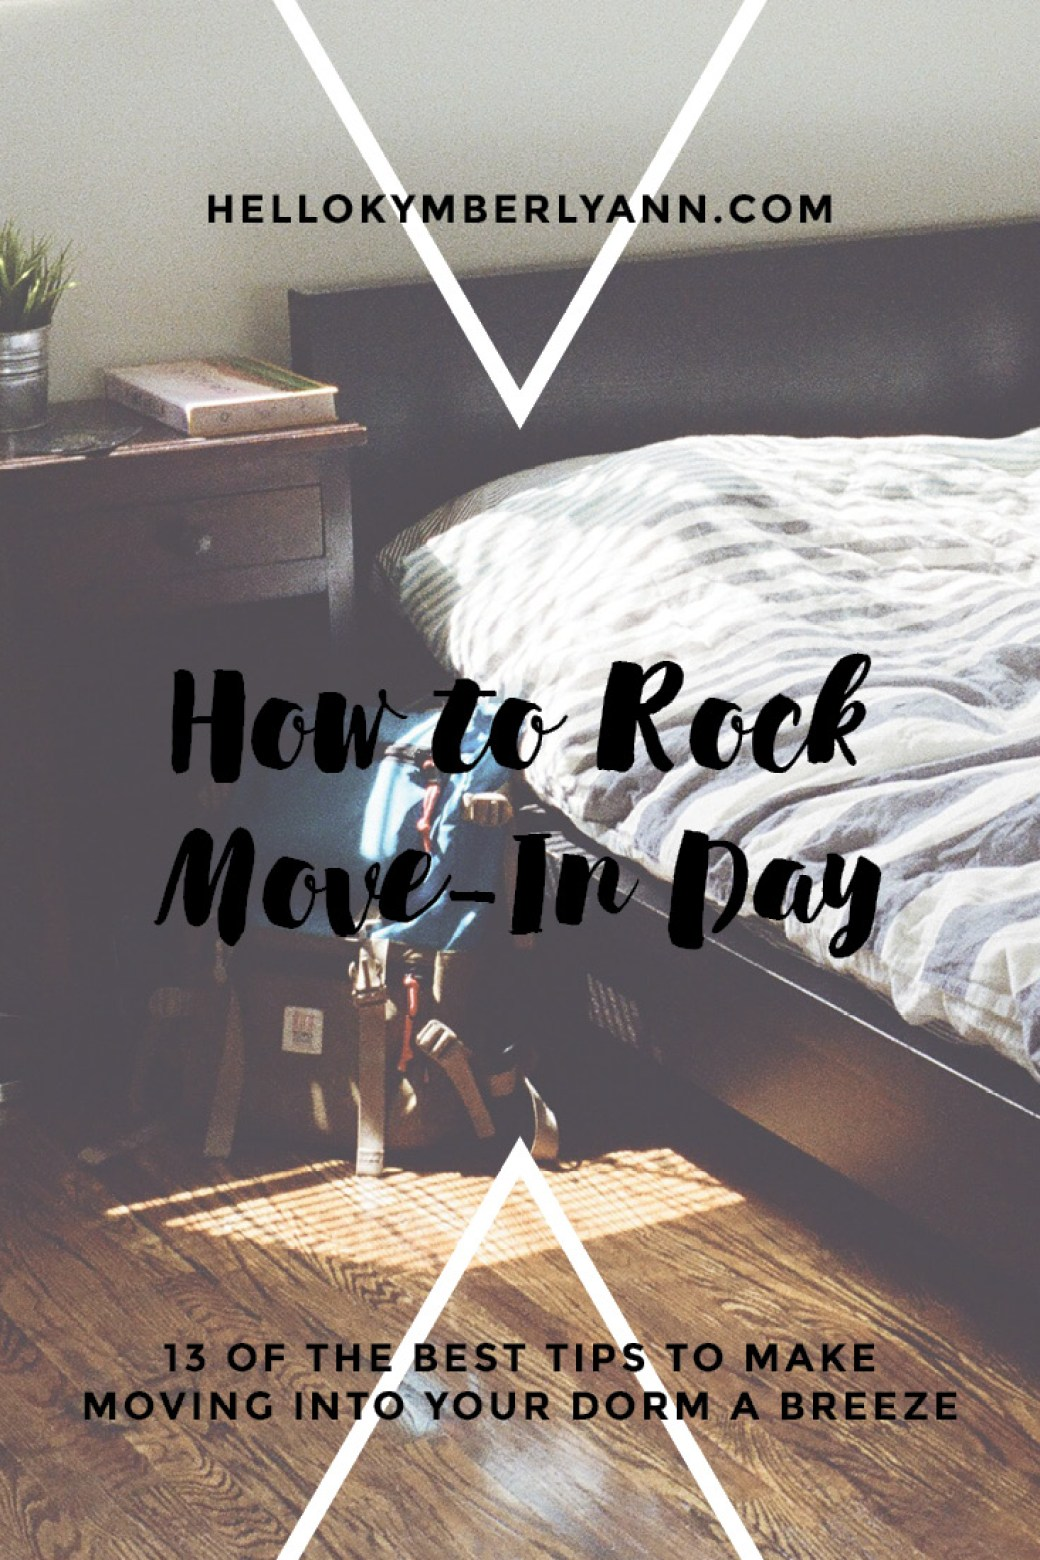 How to rock move in day: 13 of the best tips to mkae moving into your college dorm a breeze